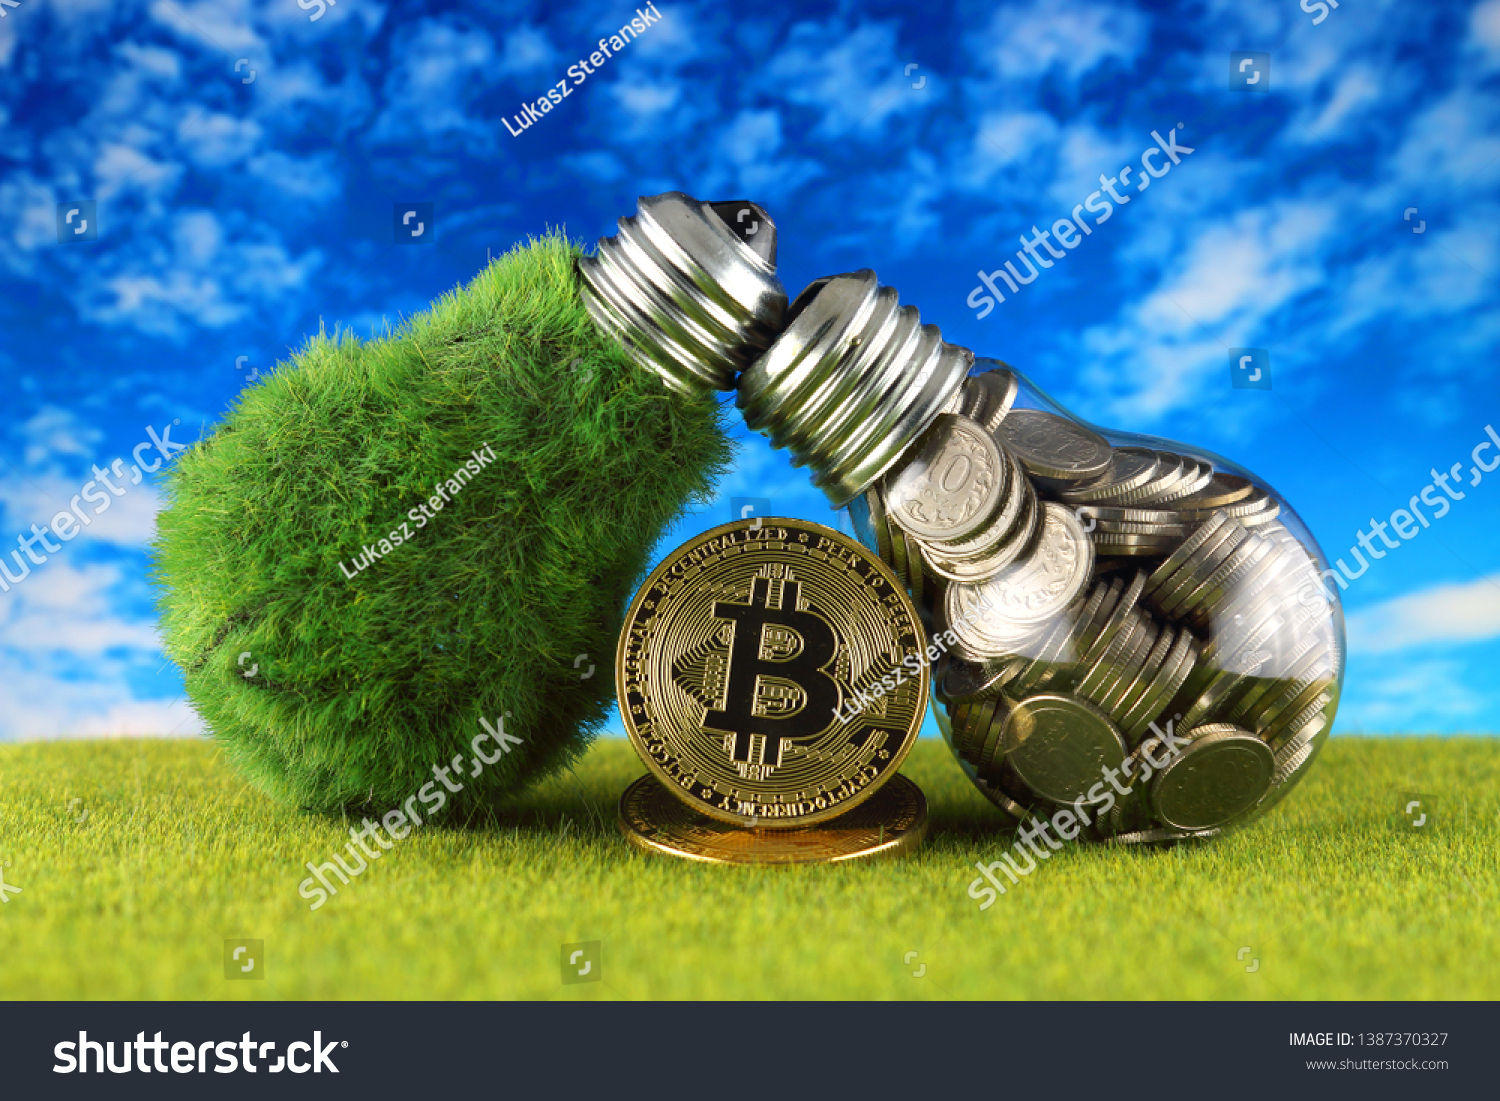 Bitcoin Btc Green Renewable Energy Concept Stock Photo (Edit